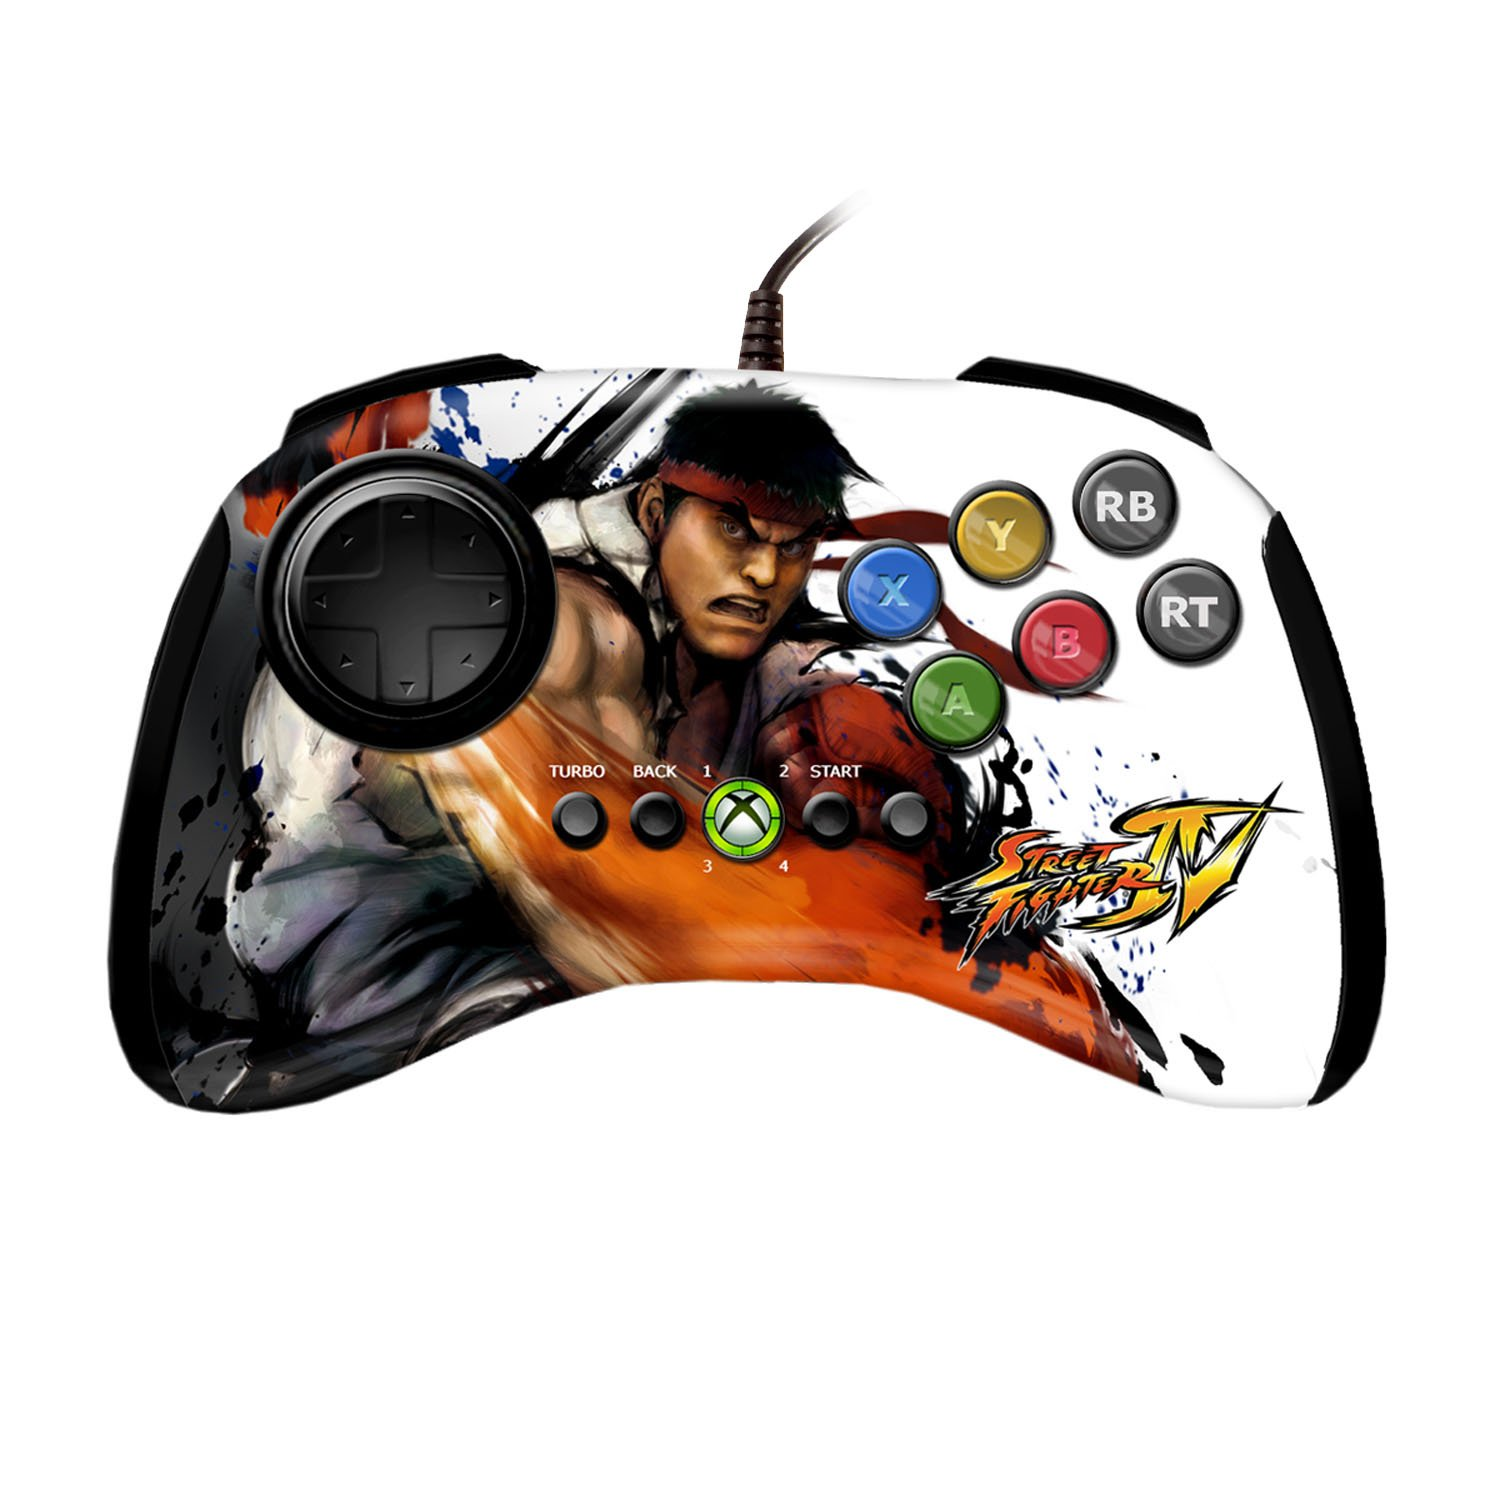 Wireless Controller / FightPad - Street Fighter IV Edition #Ryu [MadCatz]